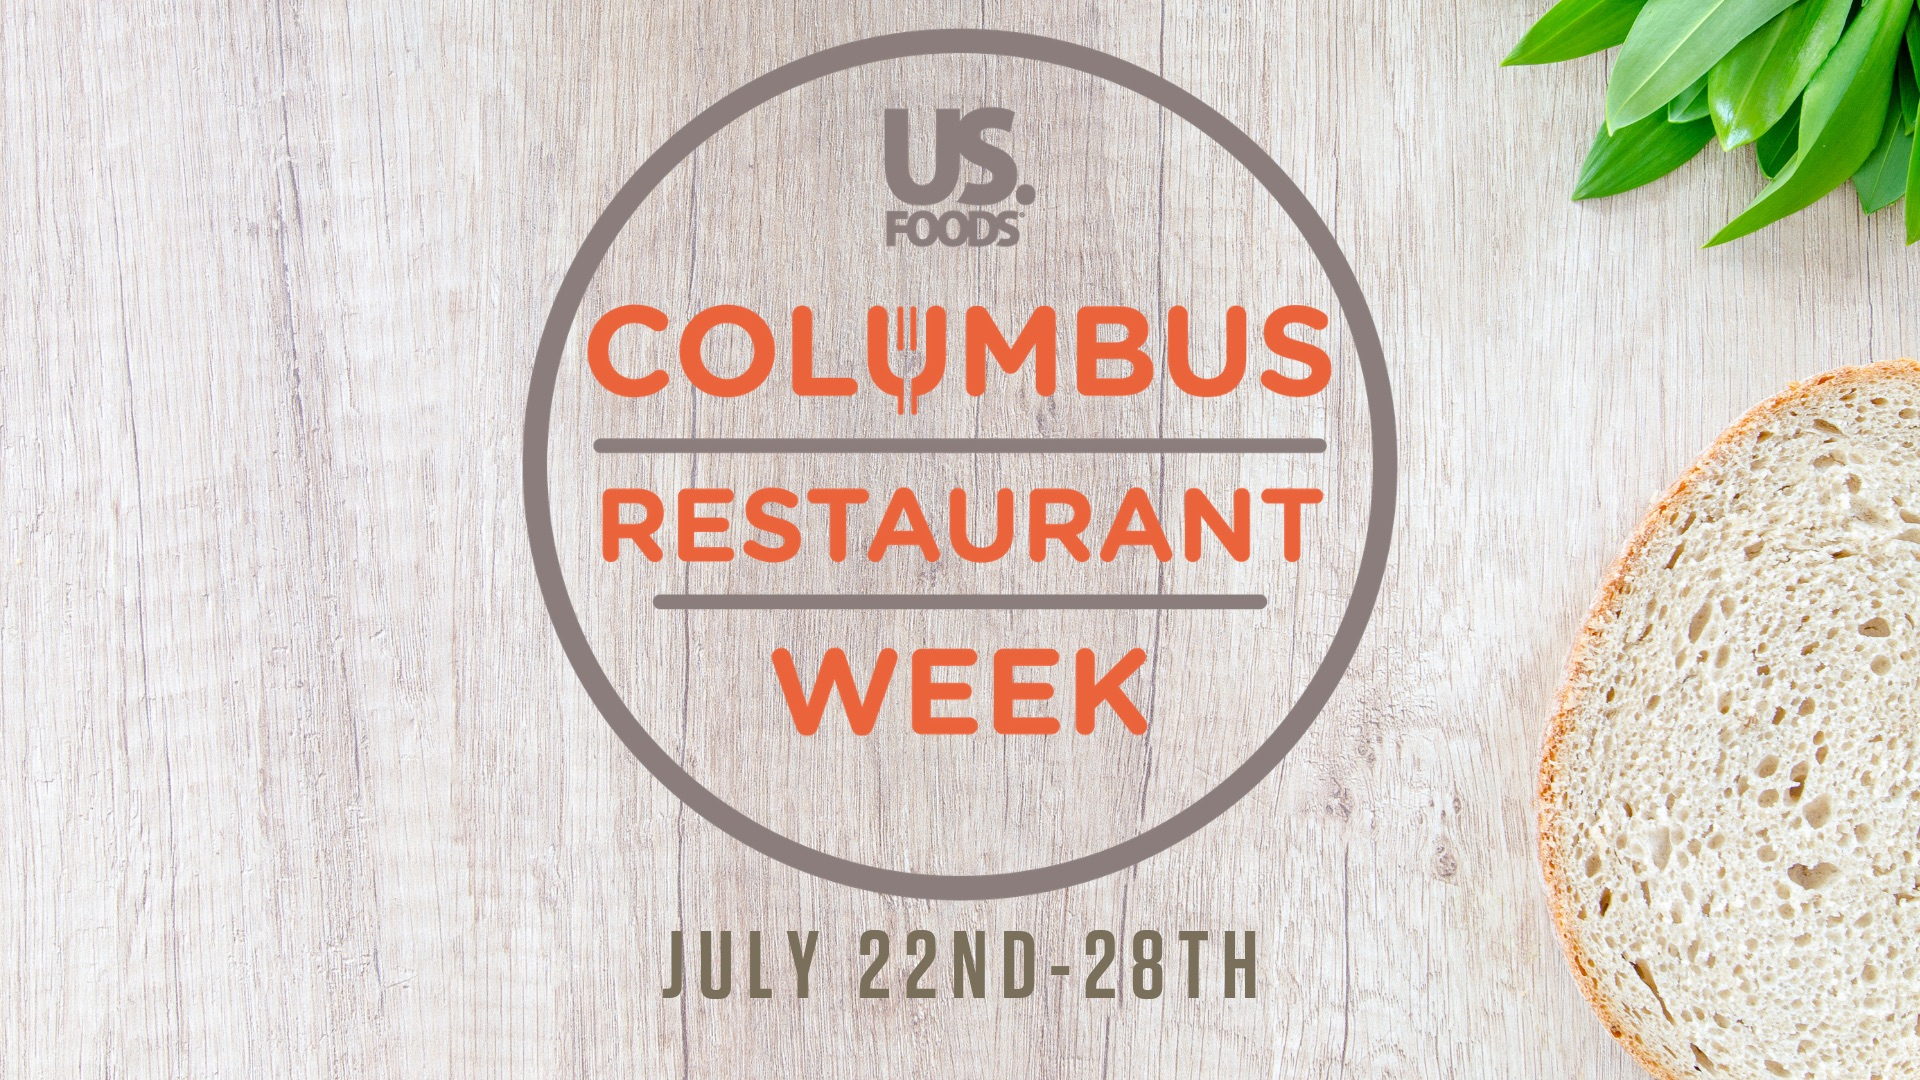 Columbus Restaurant Week Presented By U.S. Foods